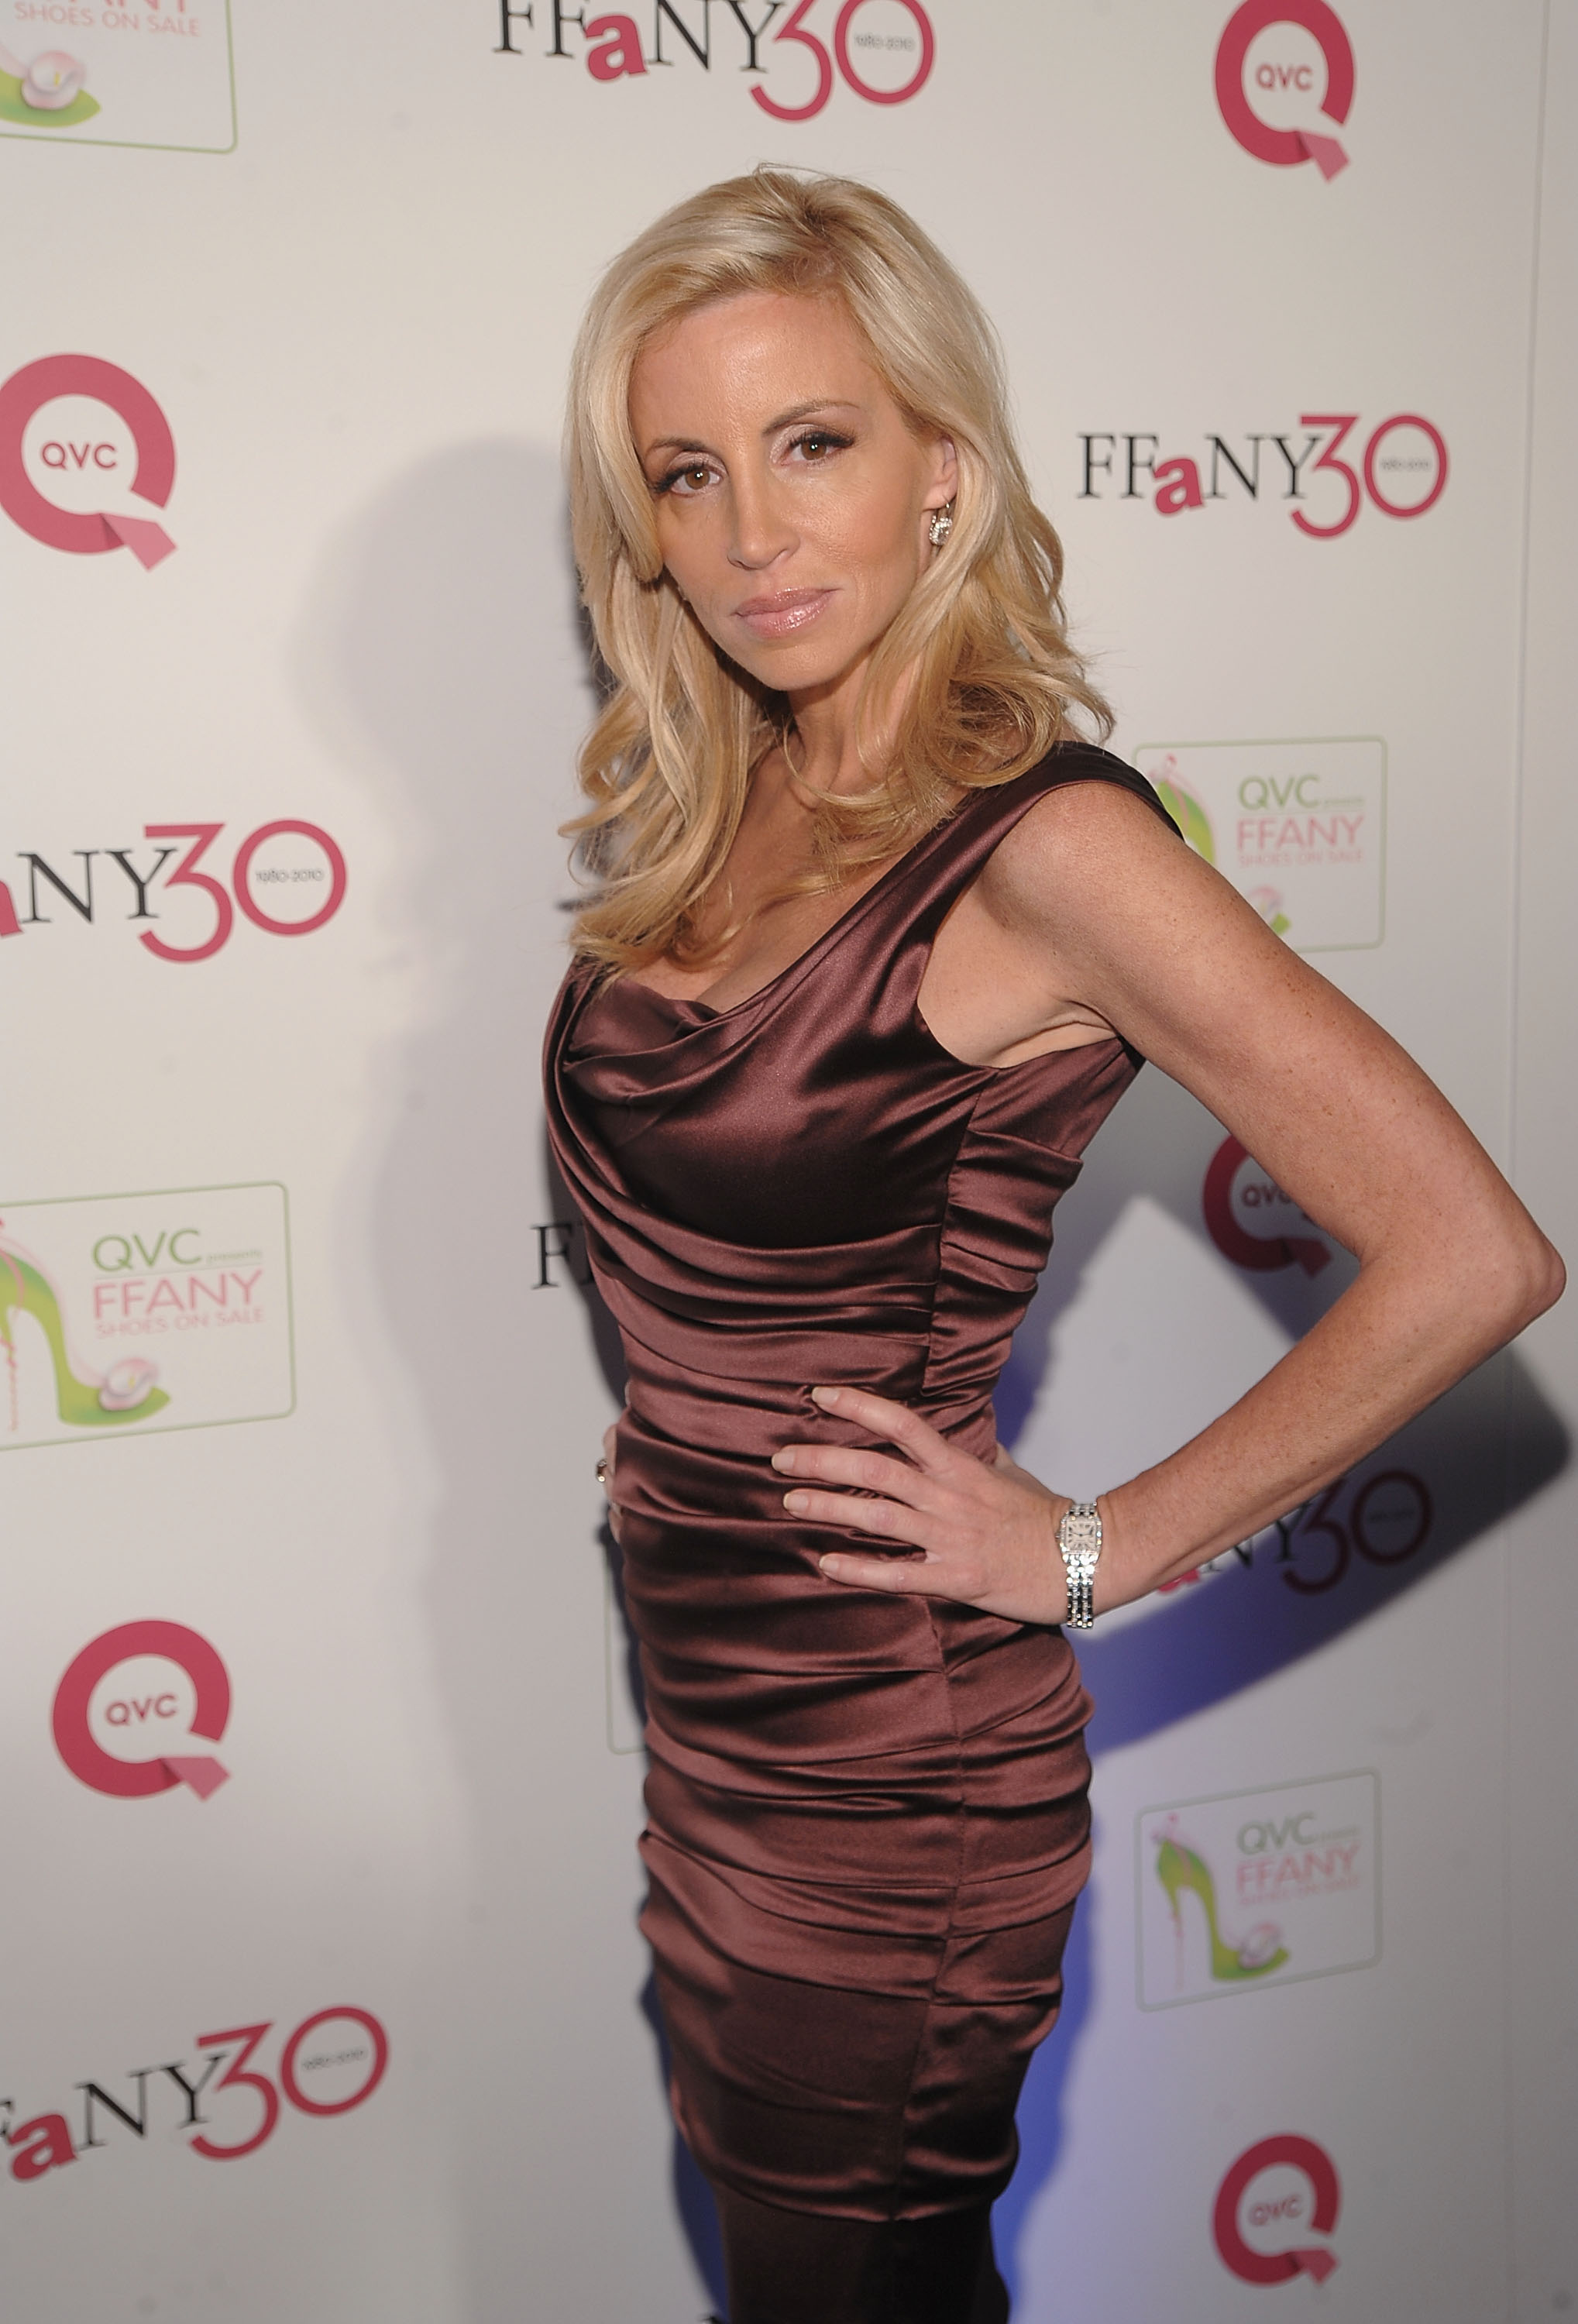 The Real Housewives of Beverly Hills Blog Roundup: Camille Grammer Channels Debbie Downer